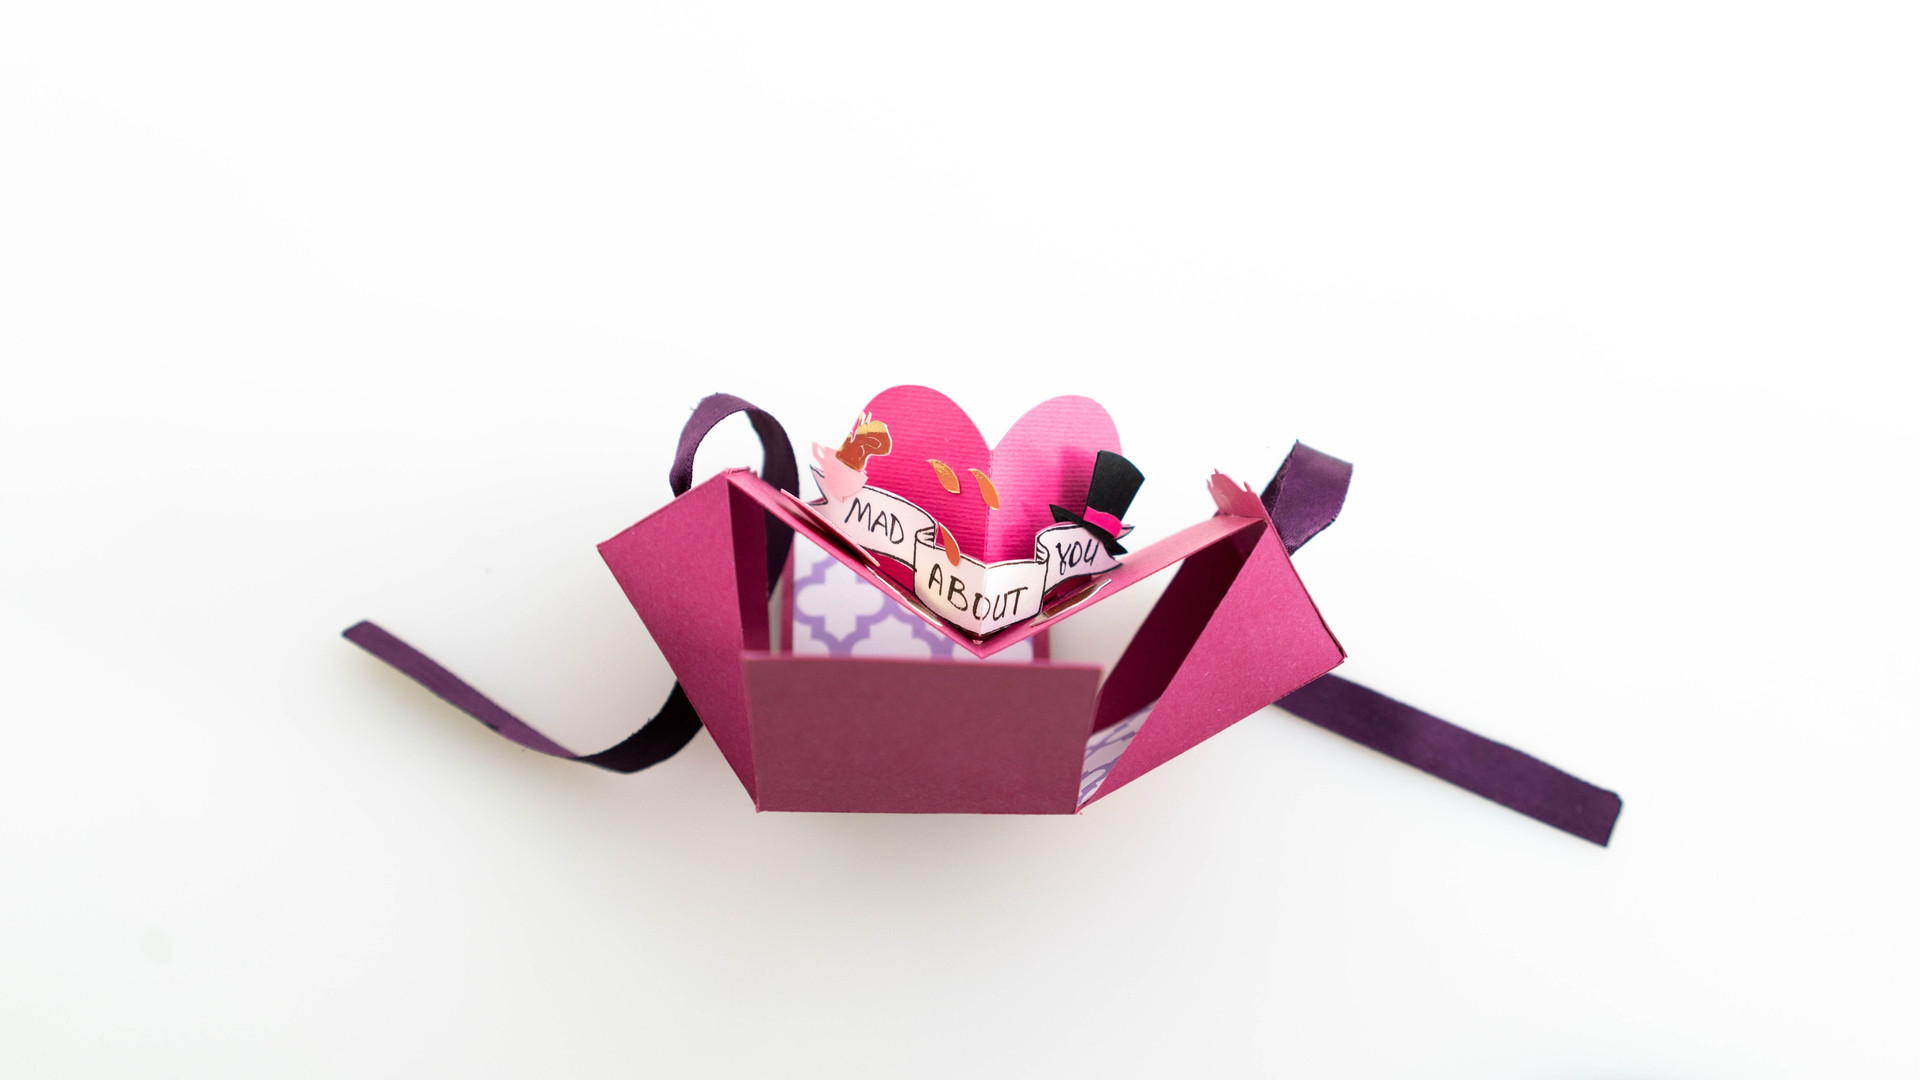 Mad Valentine's Day boxie